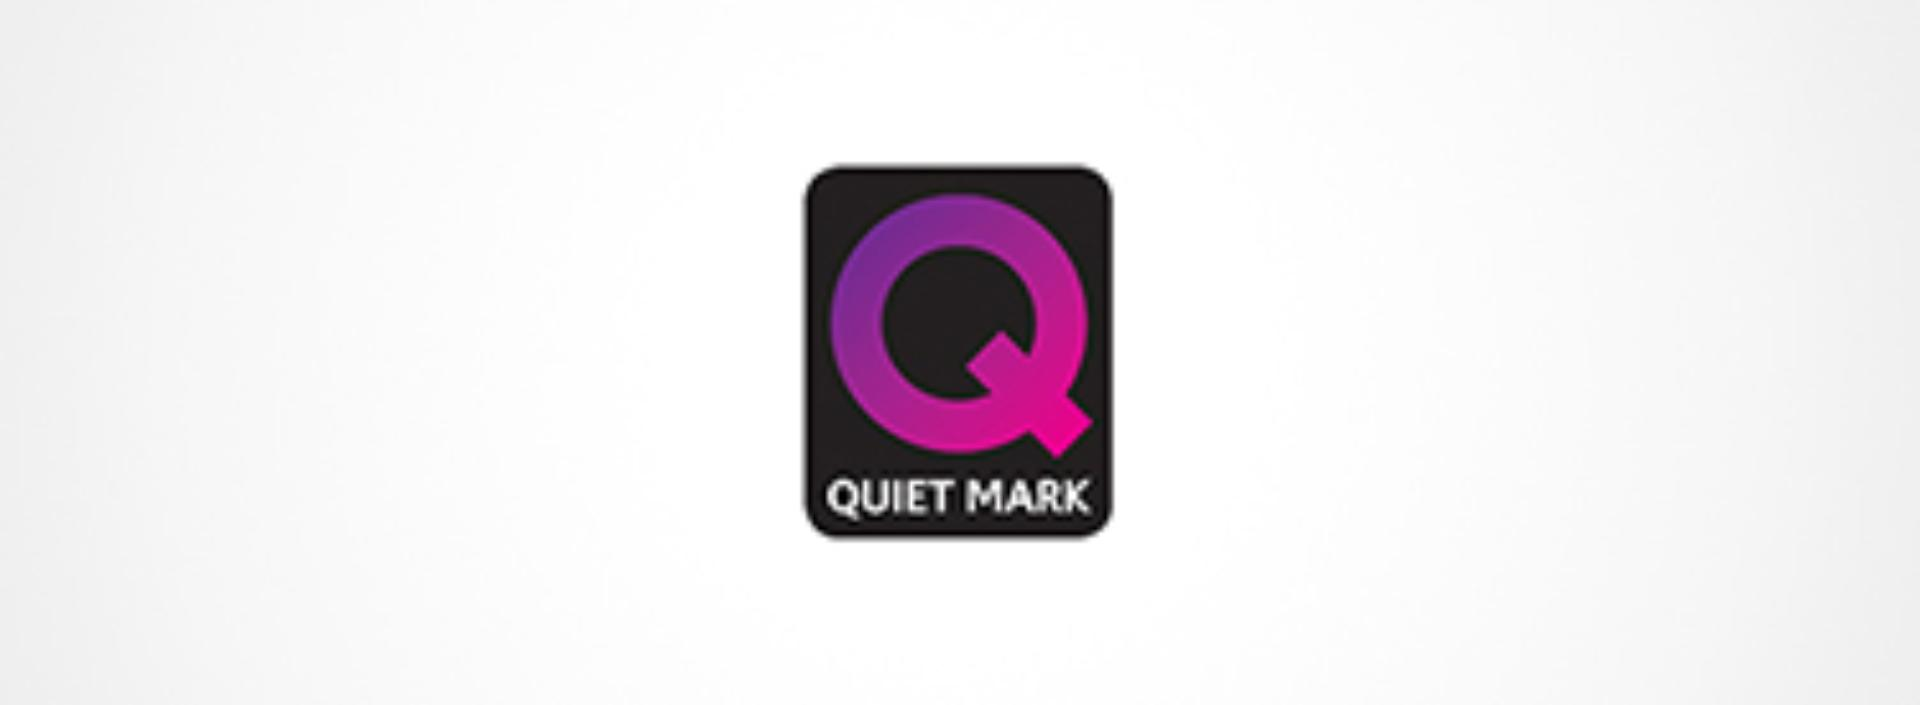 Logotipo de Quiet Mark